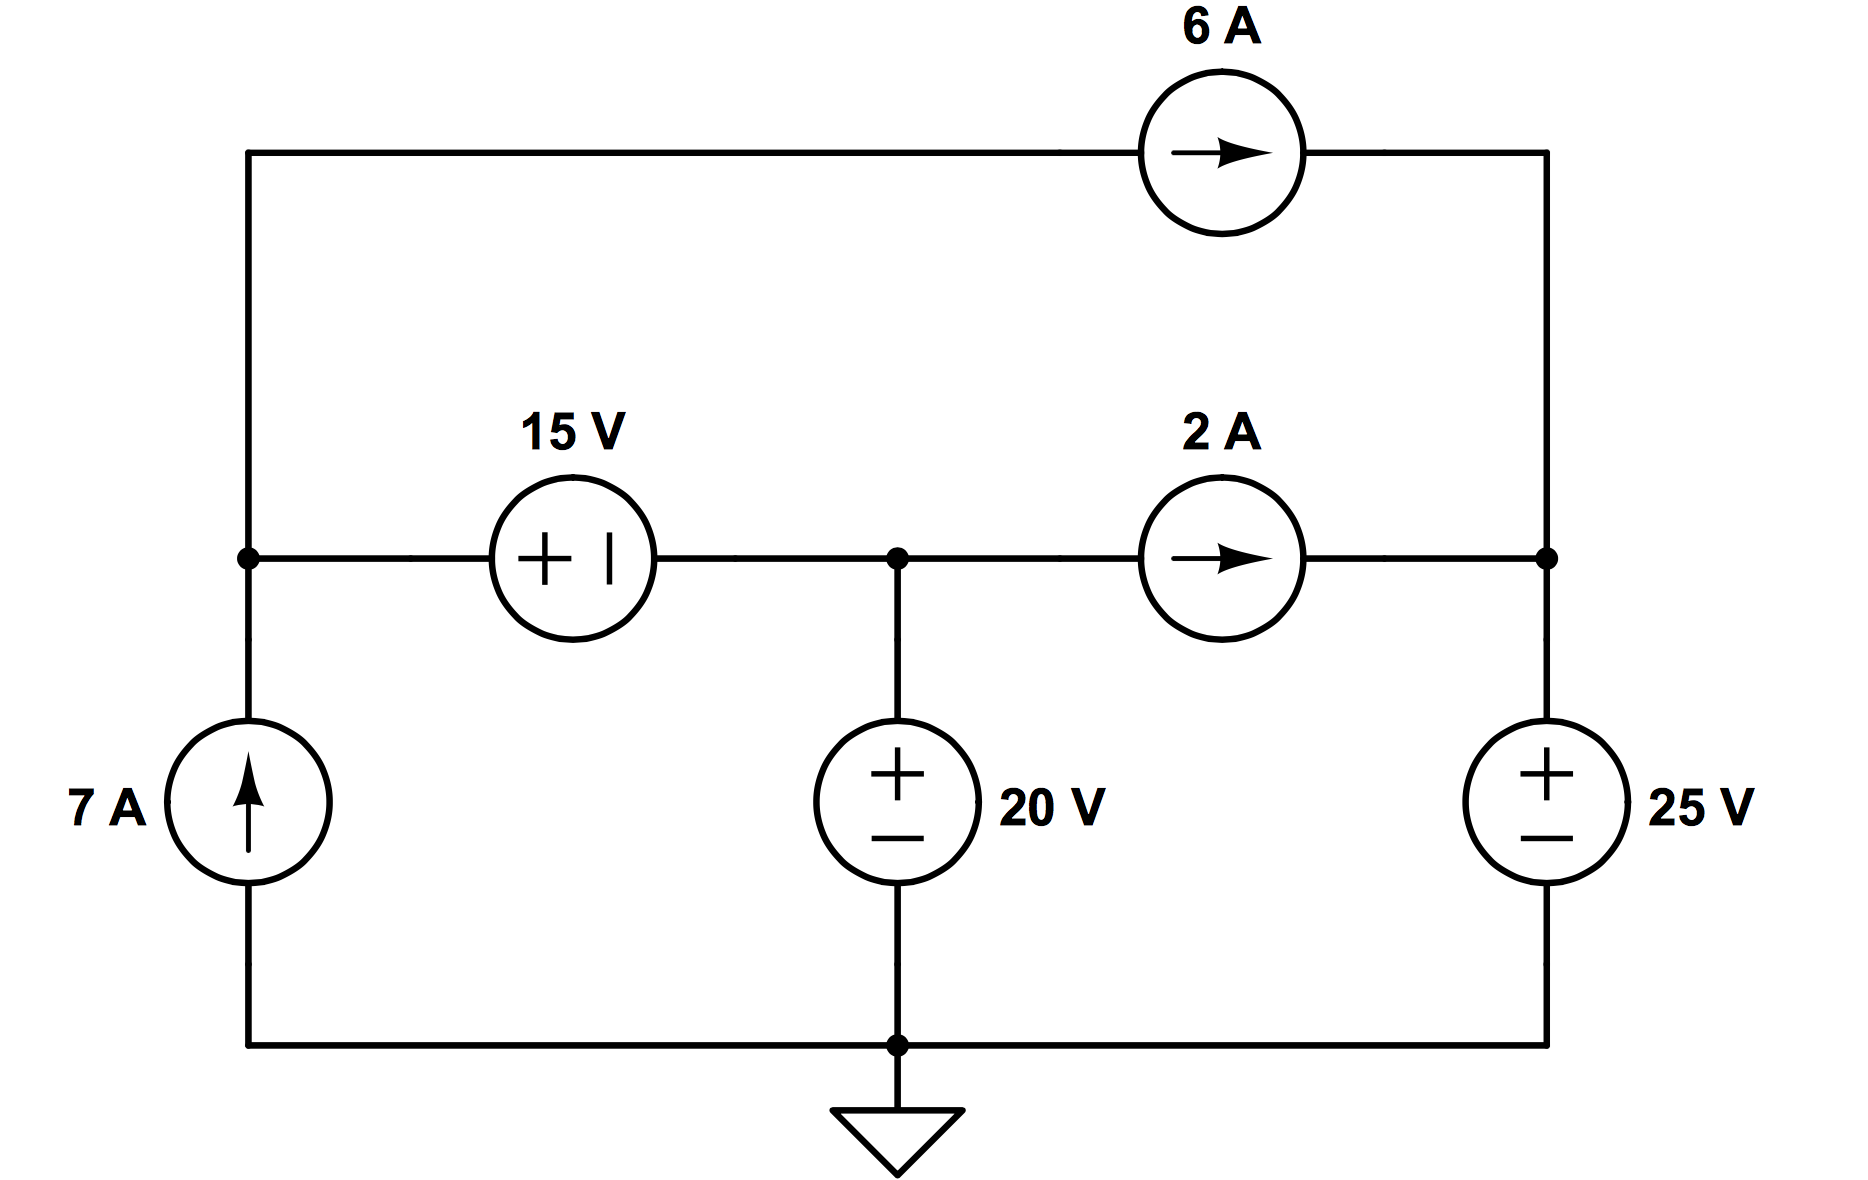 Consider the circuit diagram provided in the link